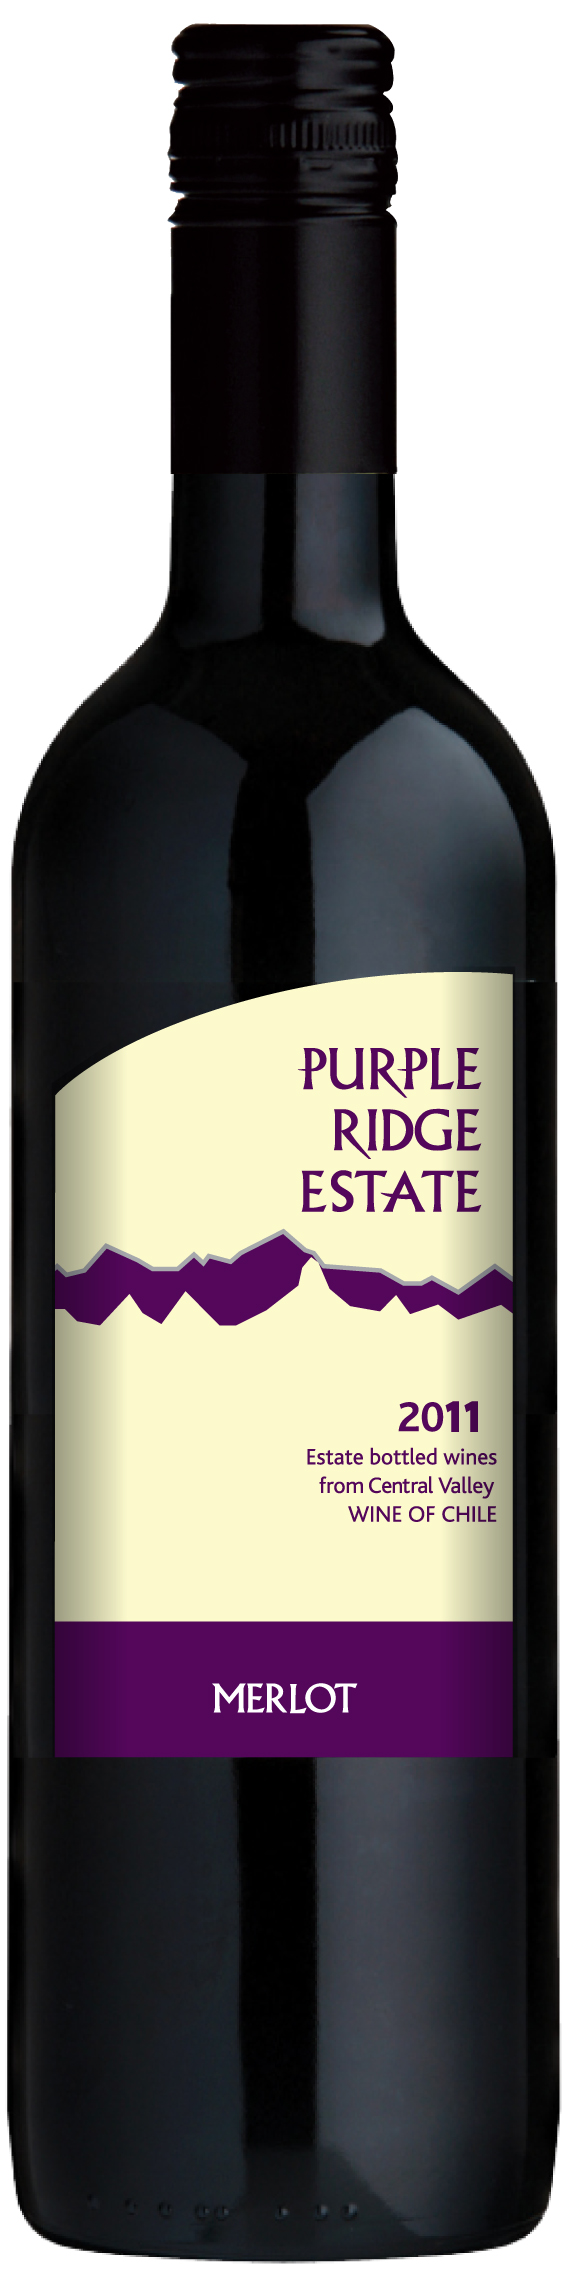 Purple Ridge Estate Merlot